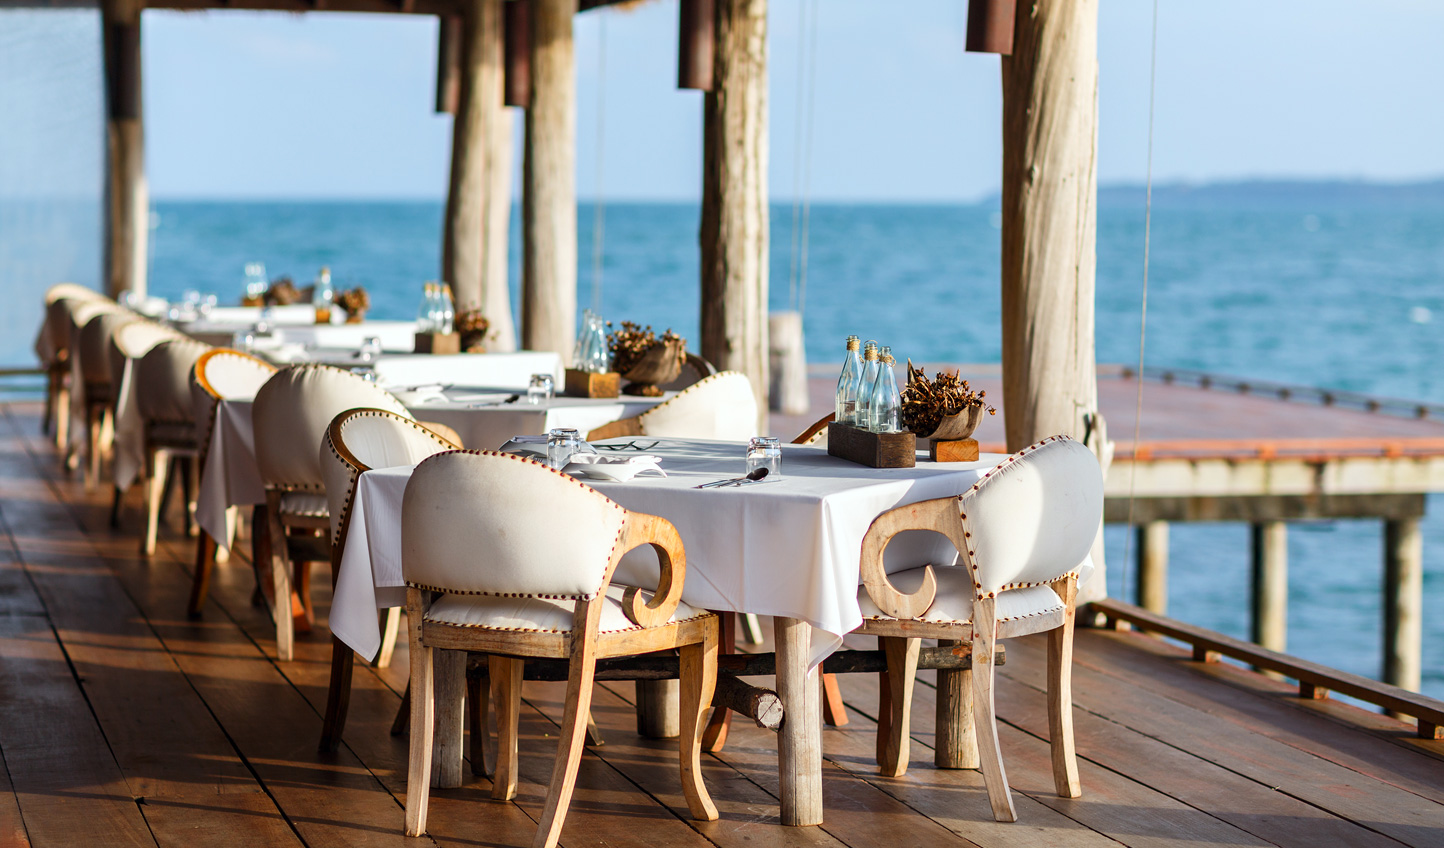 Dine on the freshest seafood and exquisite local delicacies